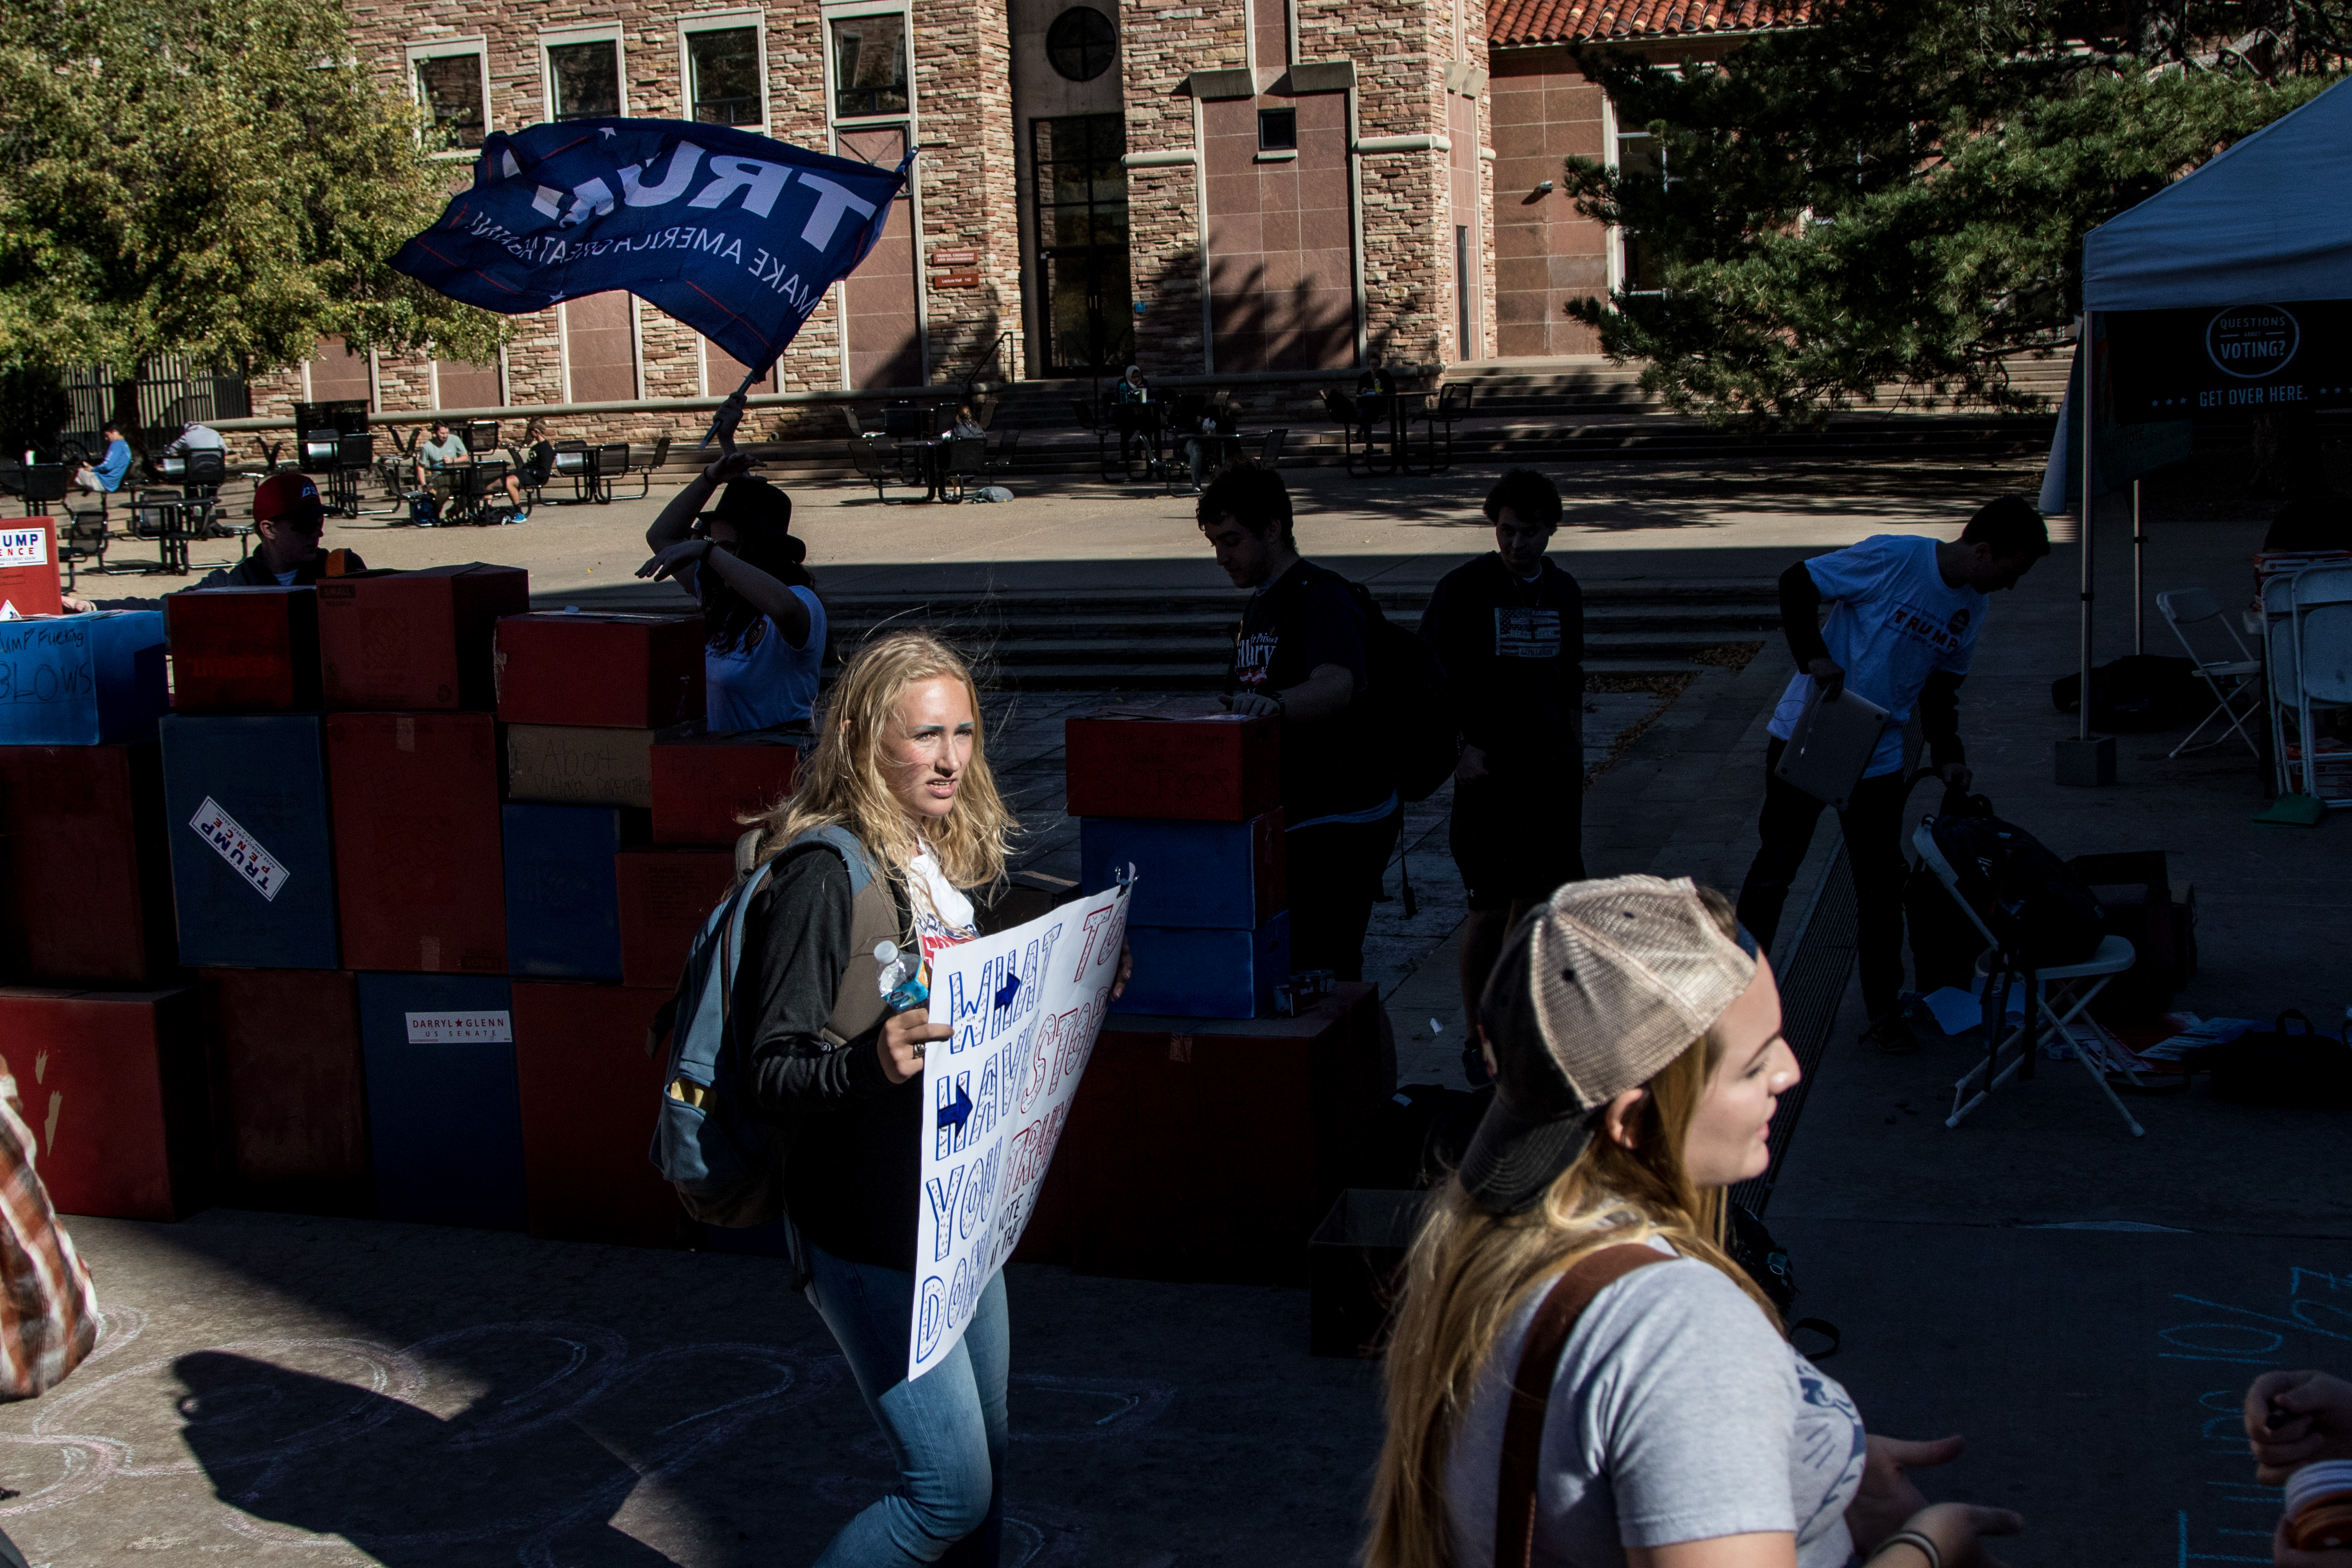 Standing tall late into the day, Sage continues to protest the Trump supporters. Her screams shared her thoughts on Trump's sexual scandals and policies towards women. Her passion was met with laughter and sneers from some students, while others cheered her on. (Jackson Barnett/CU Independent)